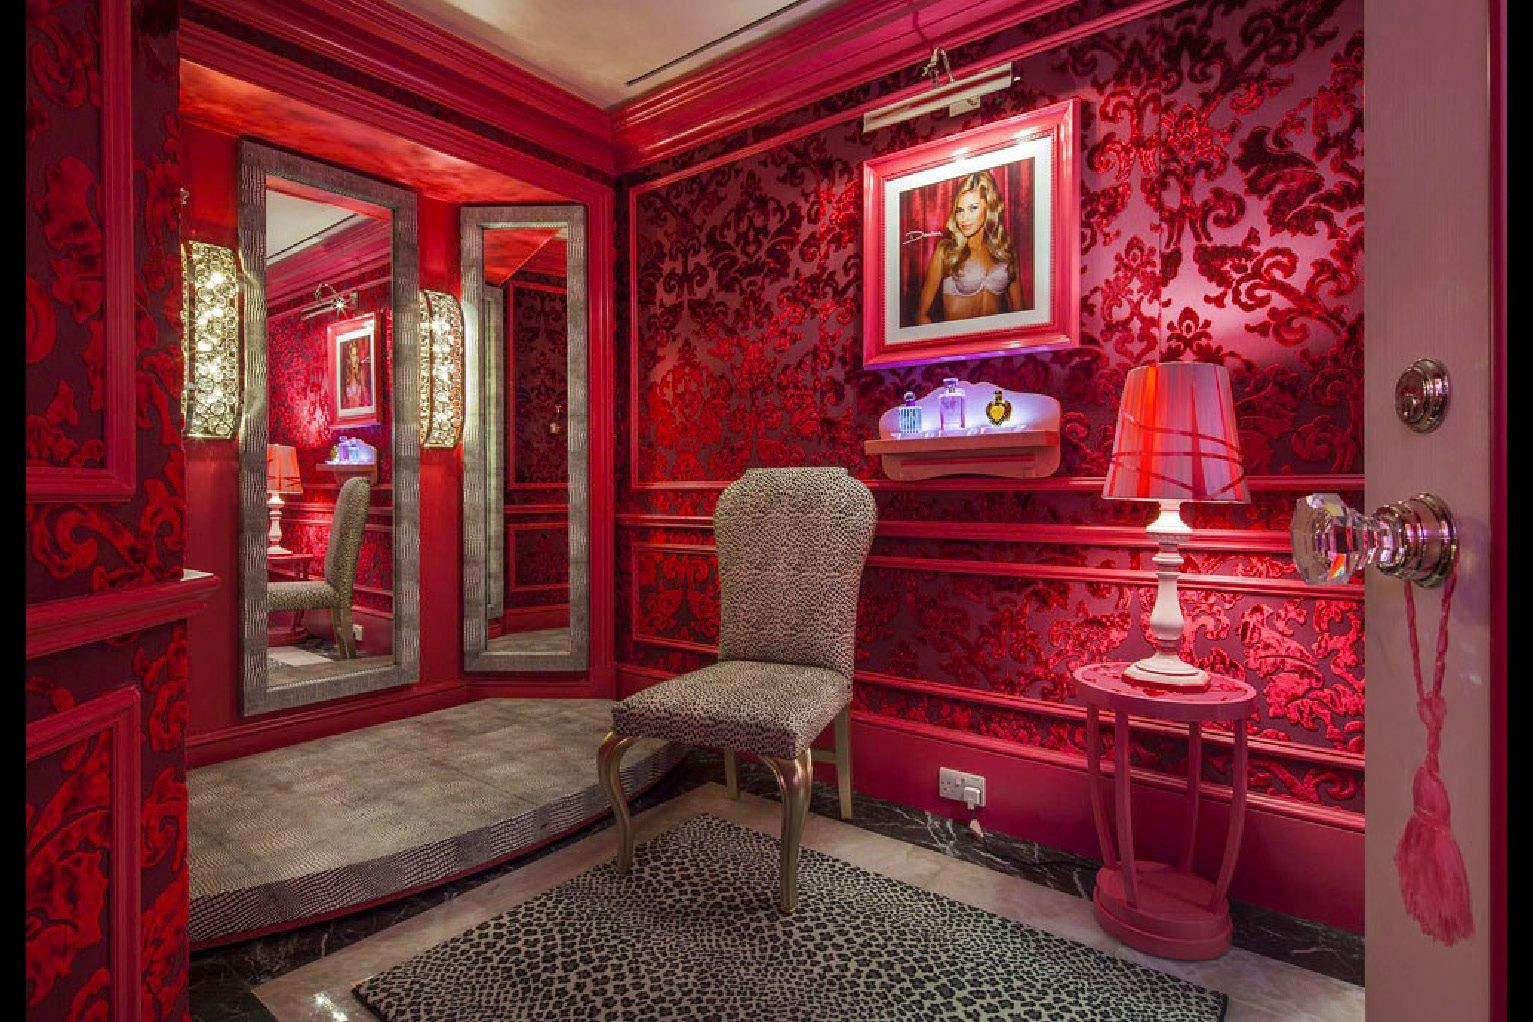 VICTORIA'S SECRET DUBAI GRADE Secret rooms, Victoria